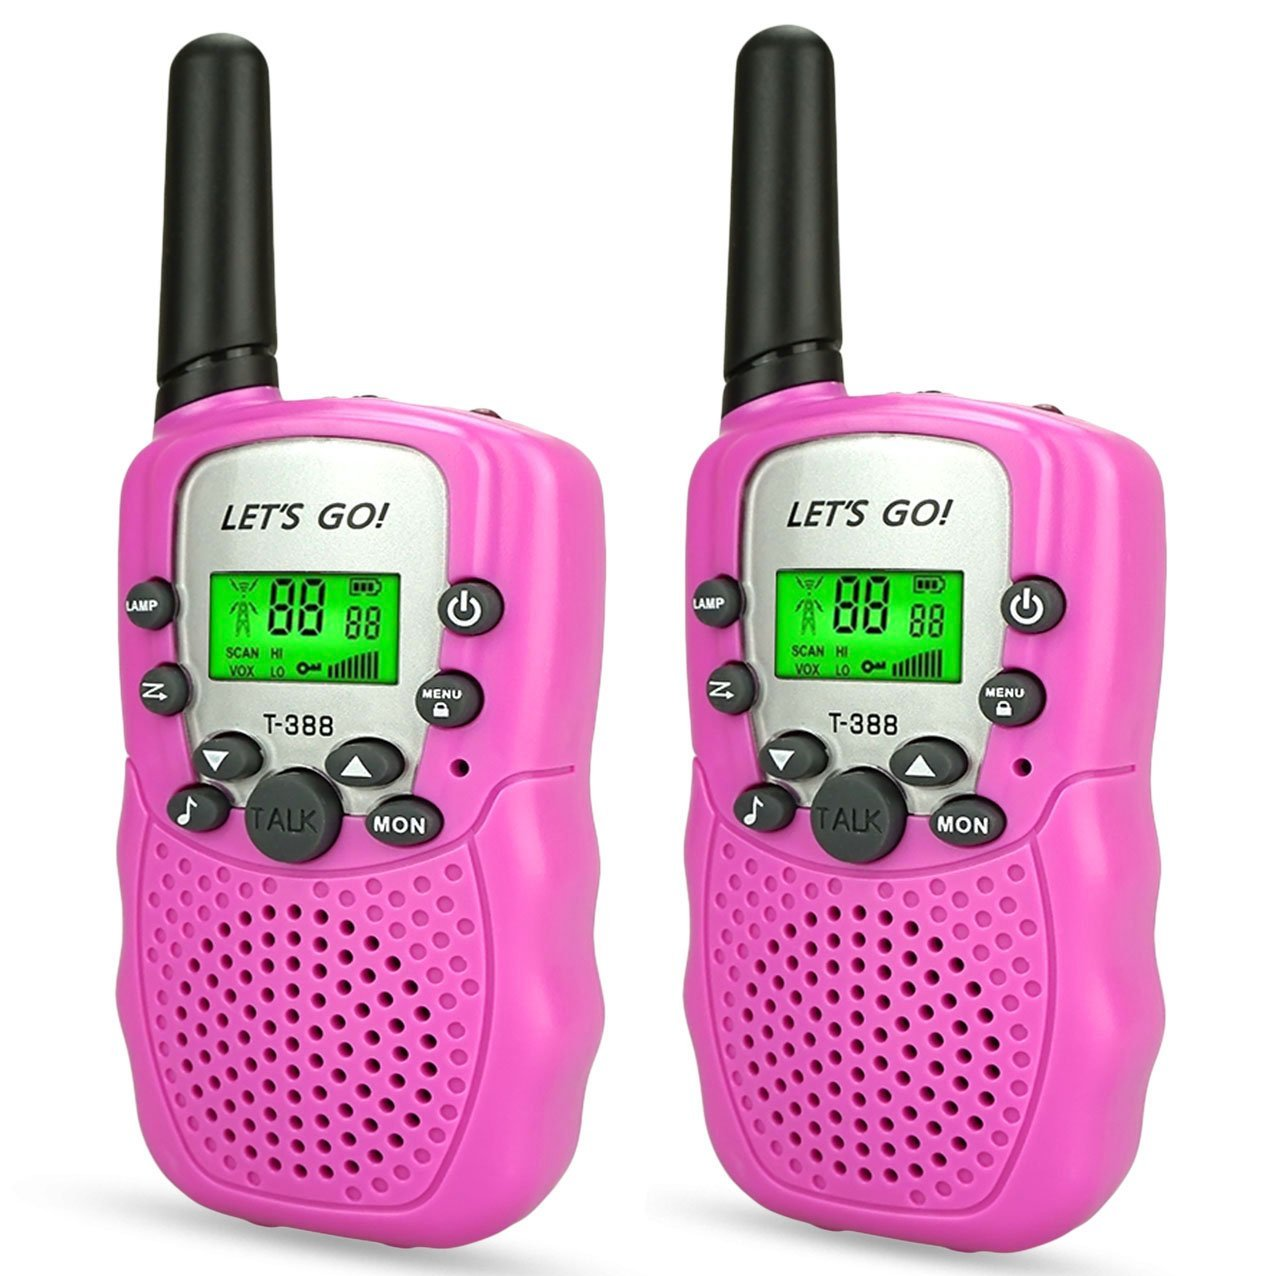 Tisy Gifts for 3-12 Year Old Girls, Long Range Walkie Talkies for kids Gifts for Teen Girls Toys for 3-12 Year Old Boys Birthday Gifts for Kids Age 4-5 TSUSDJT6